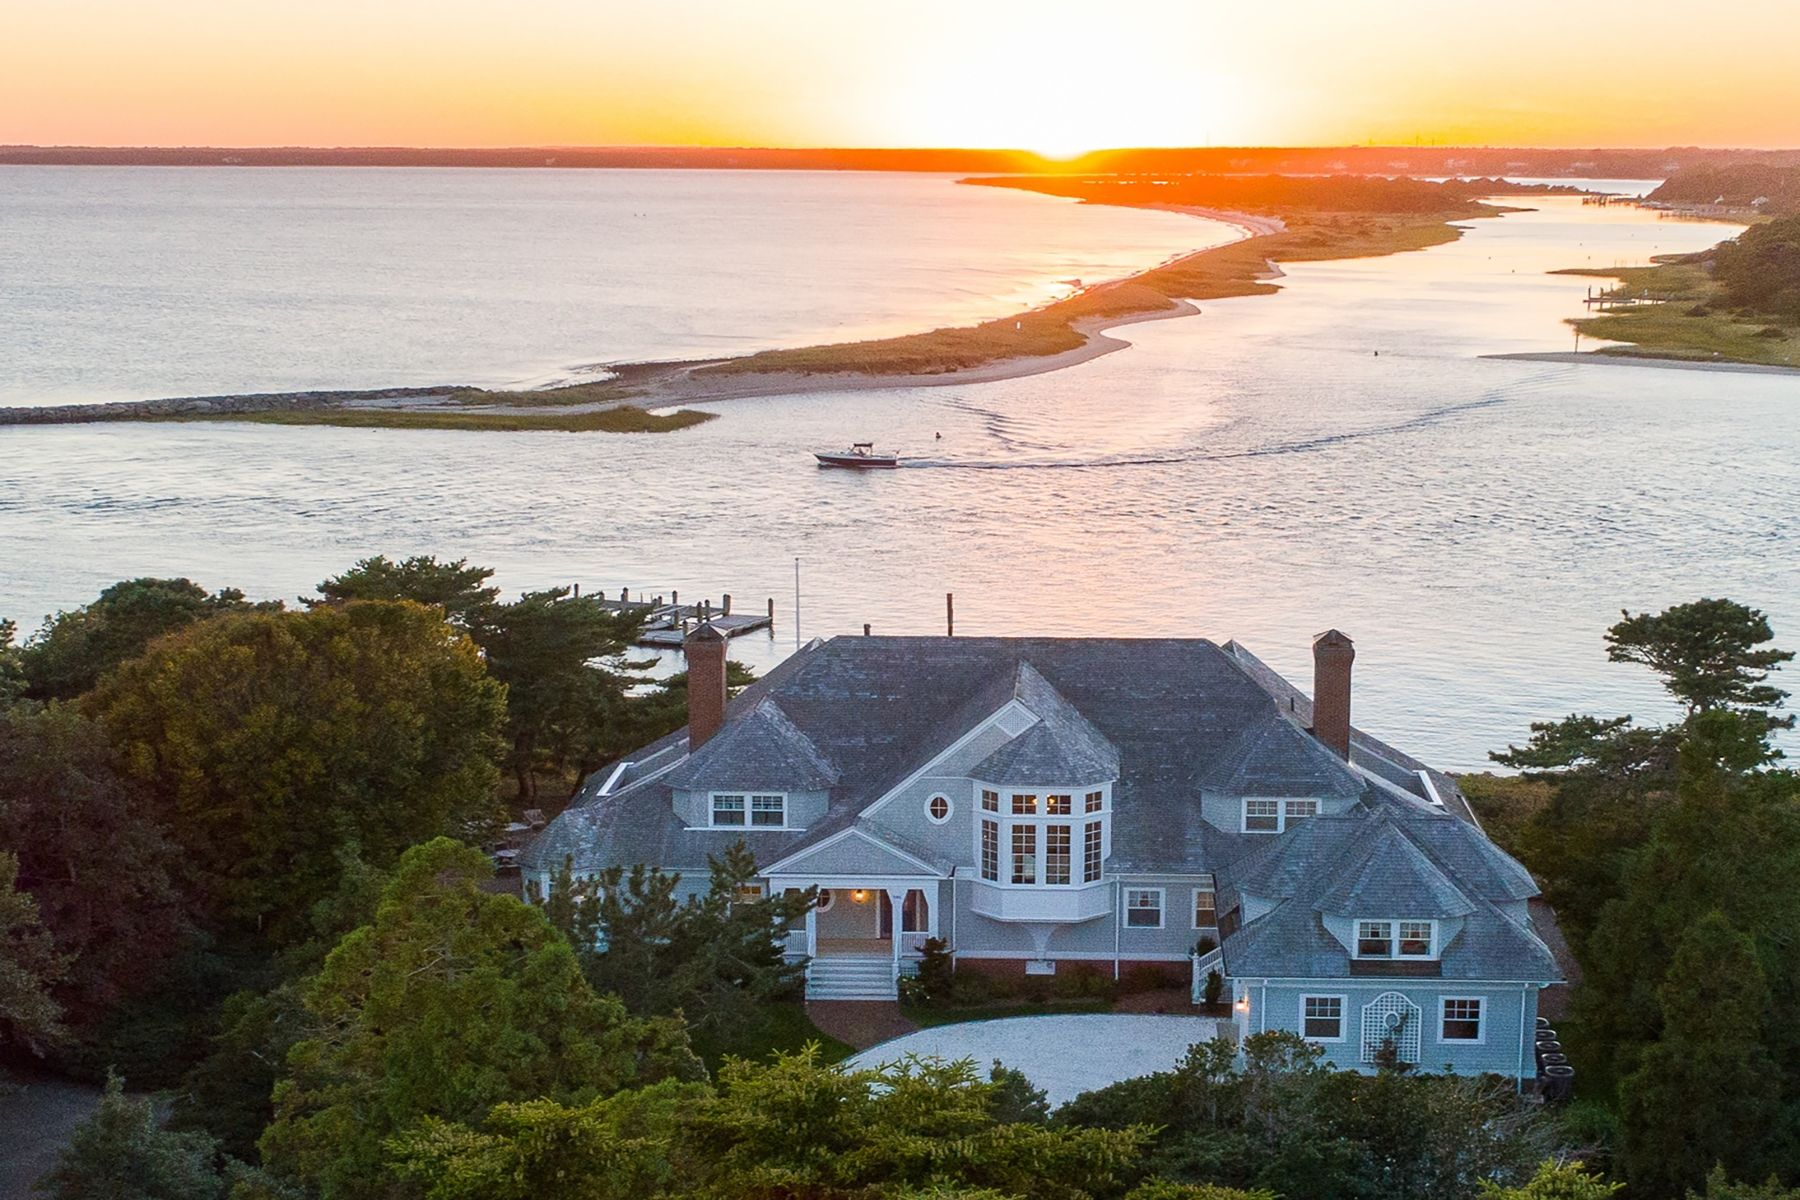 Single Family Home for Active at 995 Sea View Avenue Osterville, Massachusetts 02655 United States